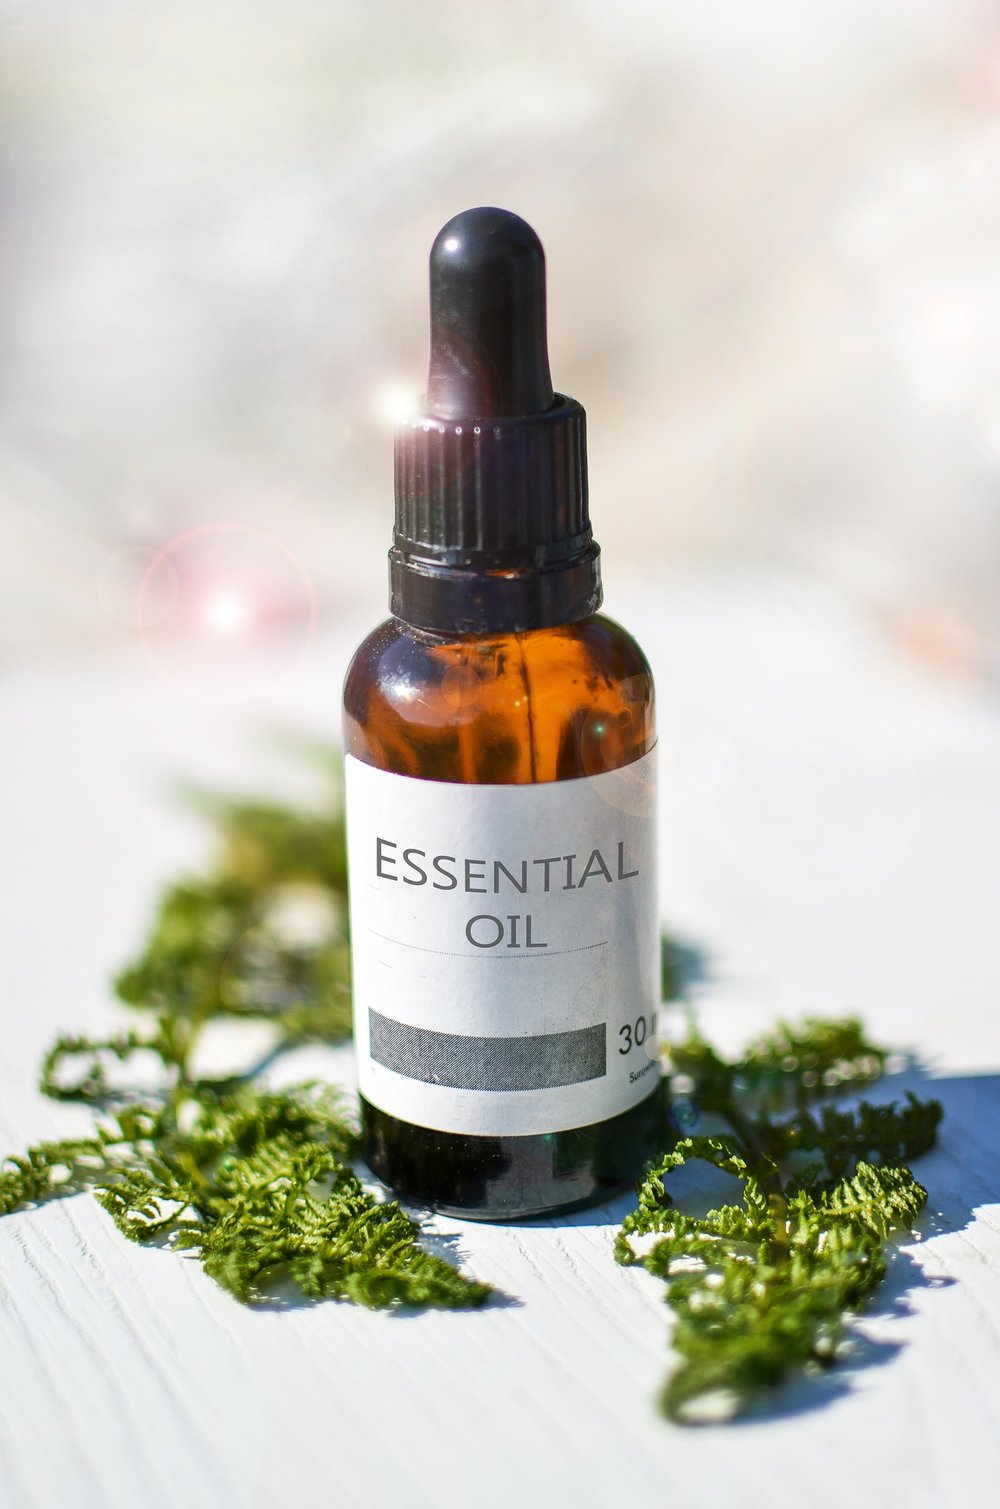 essential-oils-2385087_1920.jpg